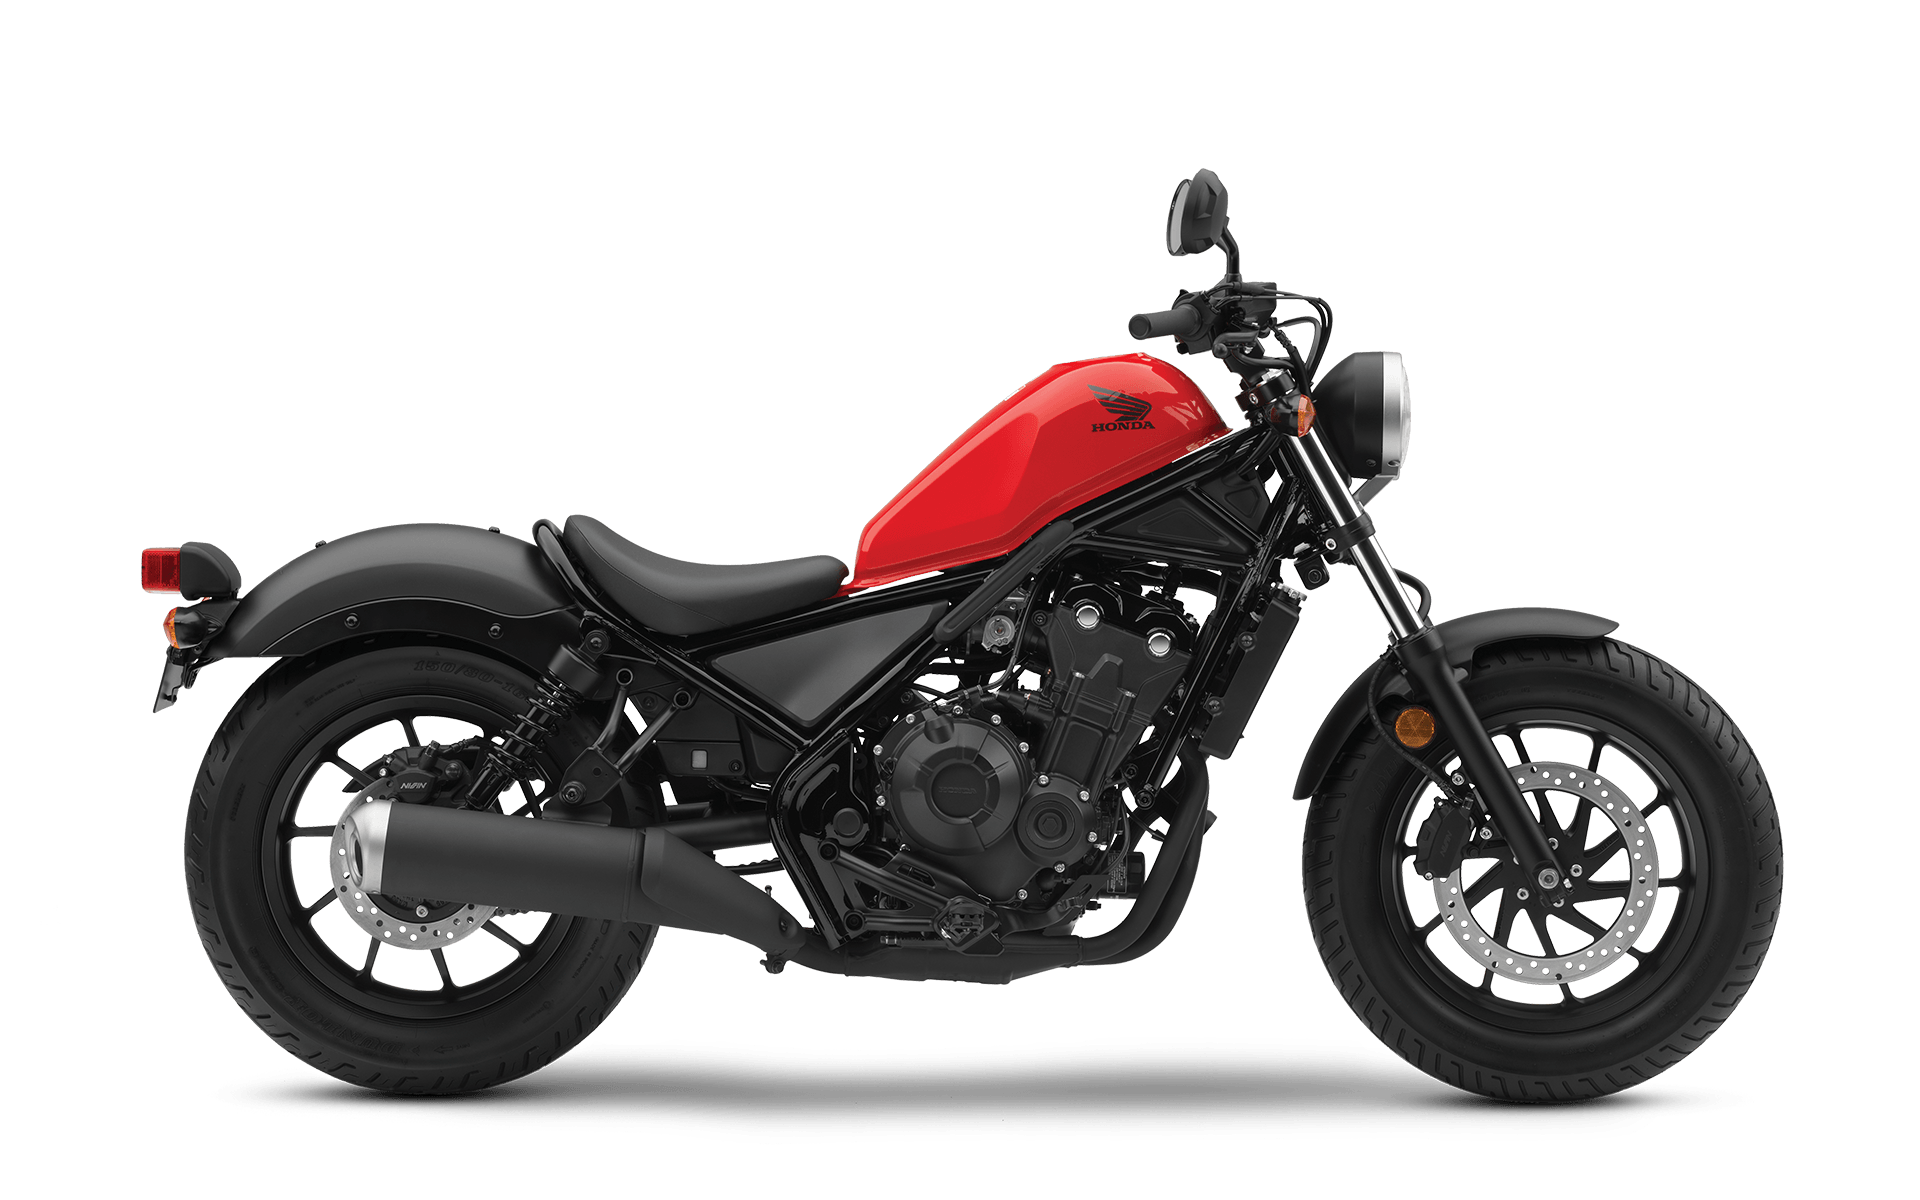 2018 Rebel 500 in Red